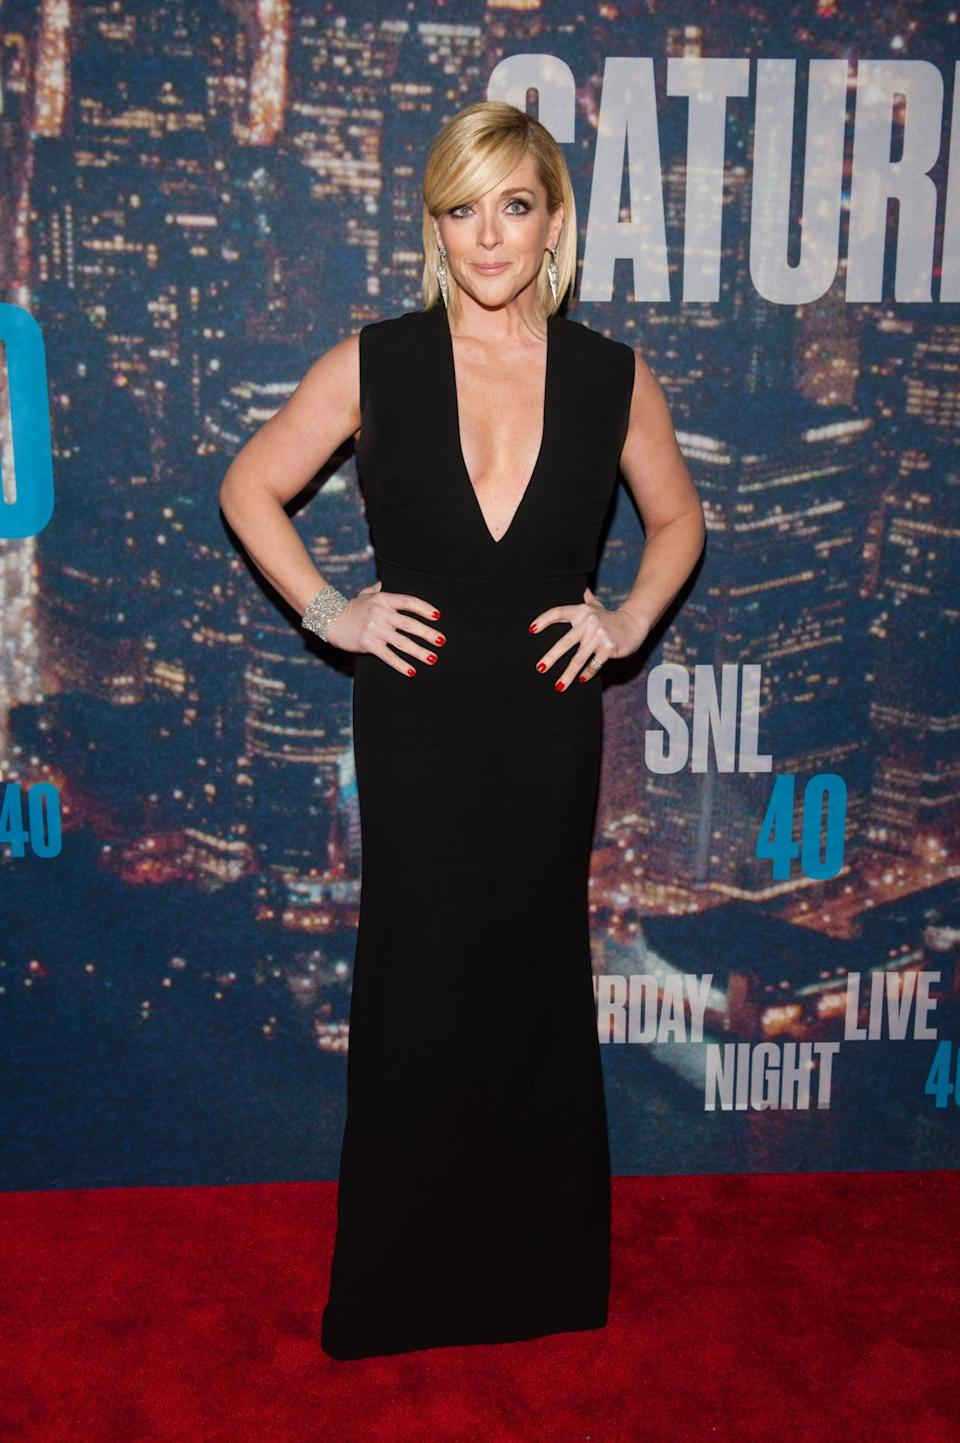 Her date for the night, Lucy Liu, went for a princess dress but Jane Krakowski's floor-length gigure-hugging black dress is totally sexy.